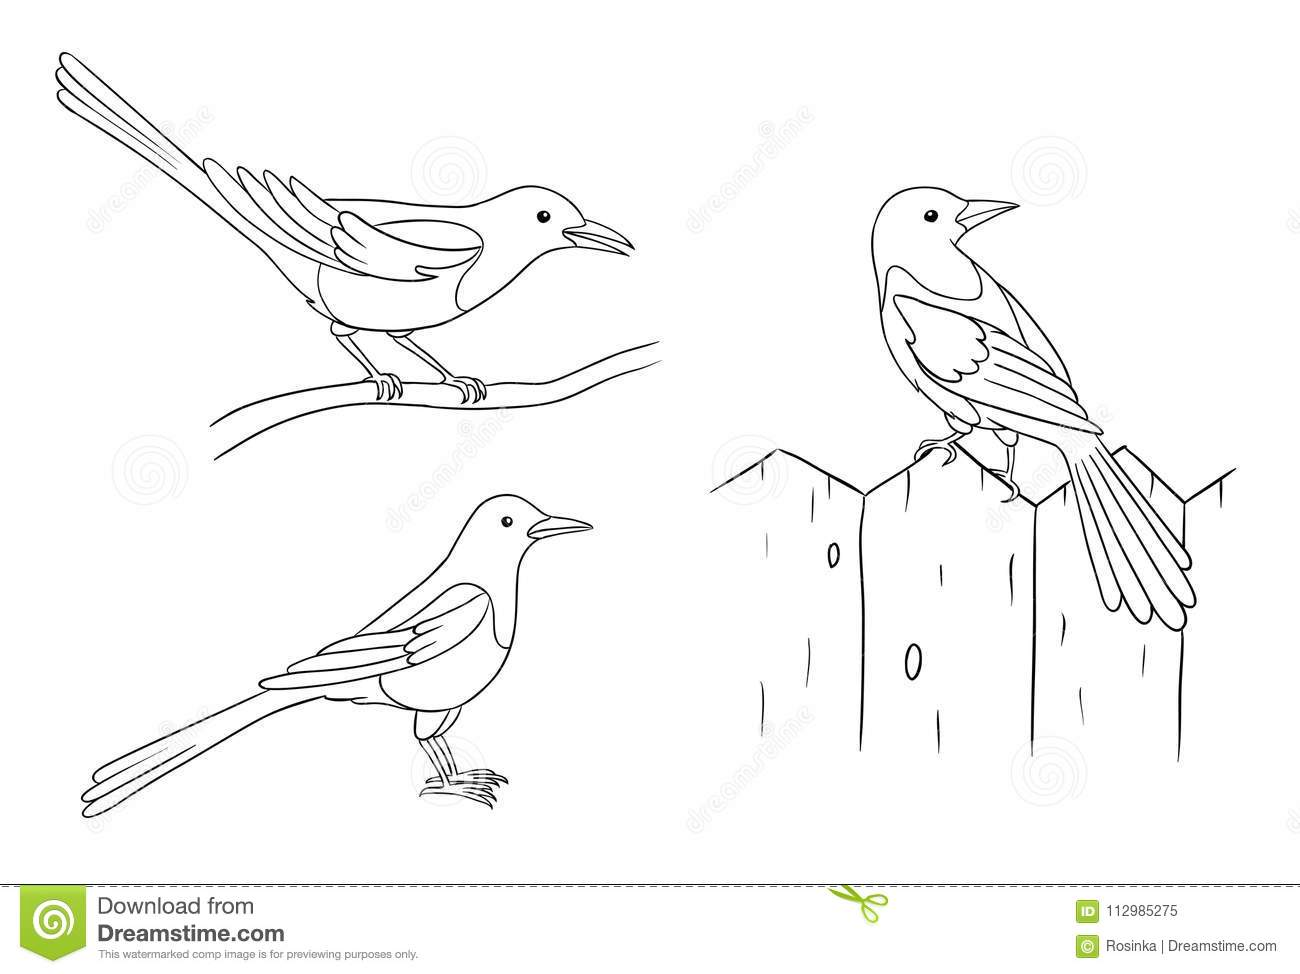 Magpies in contours - vector illustration